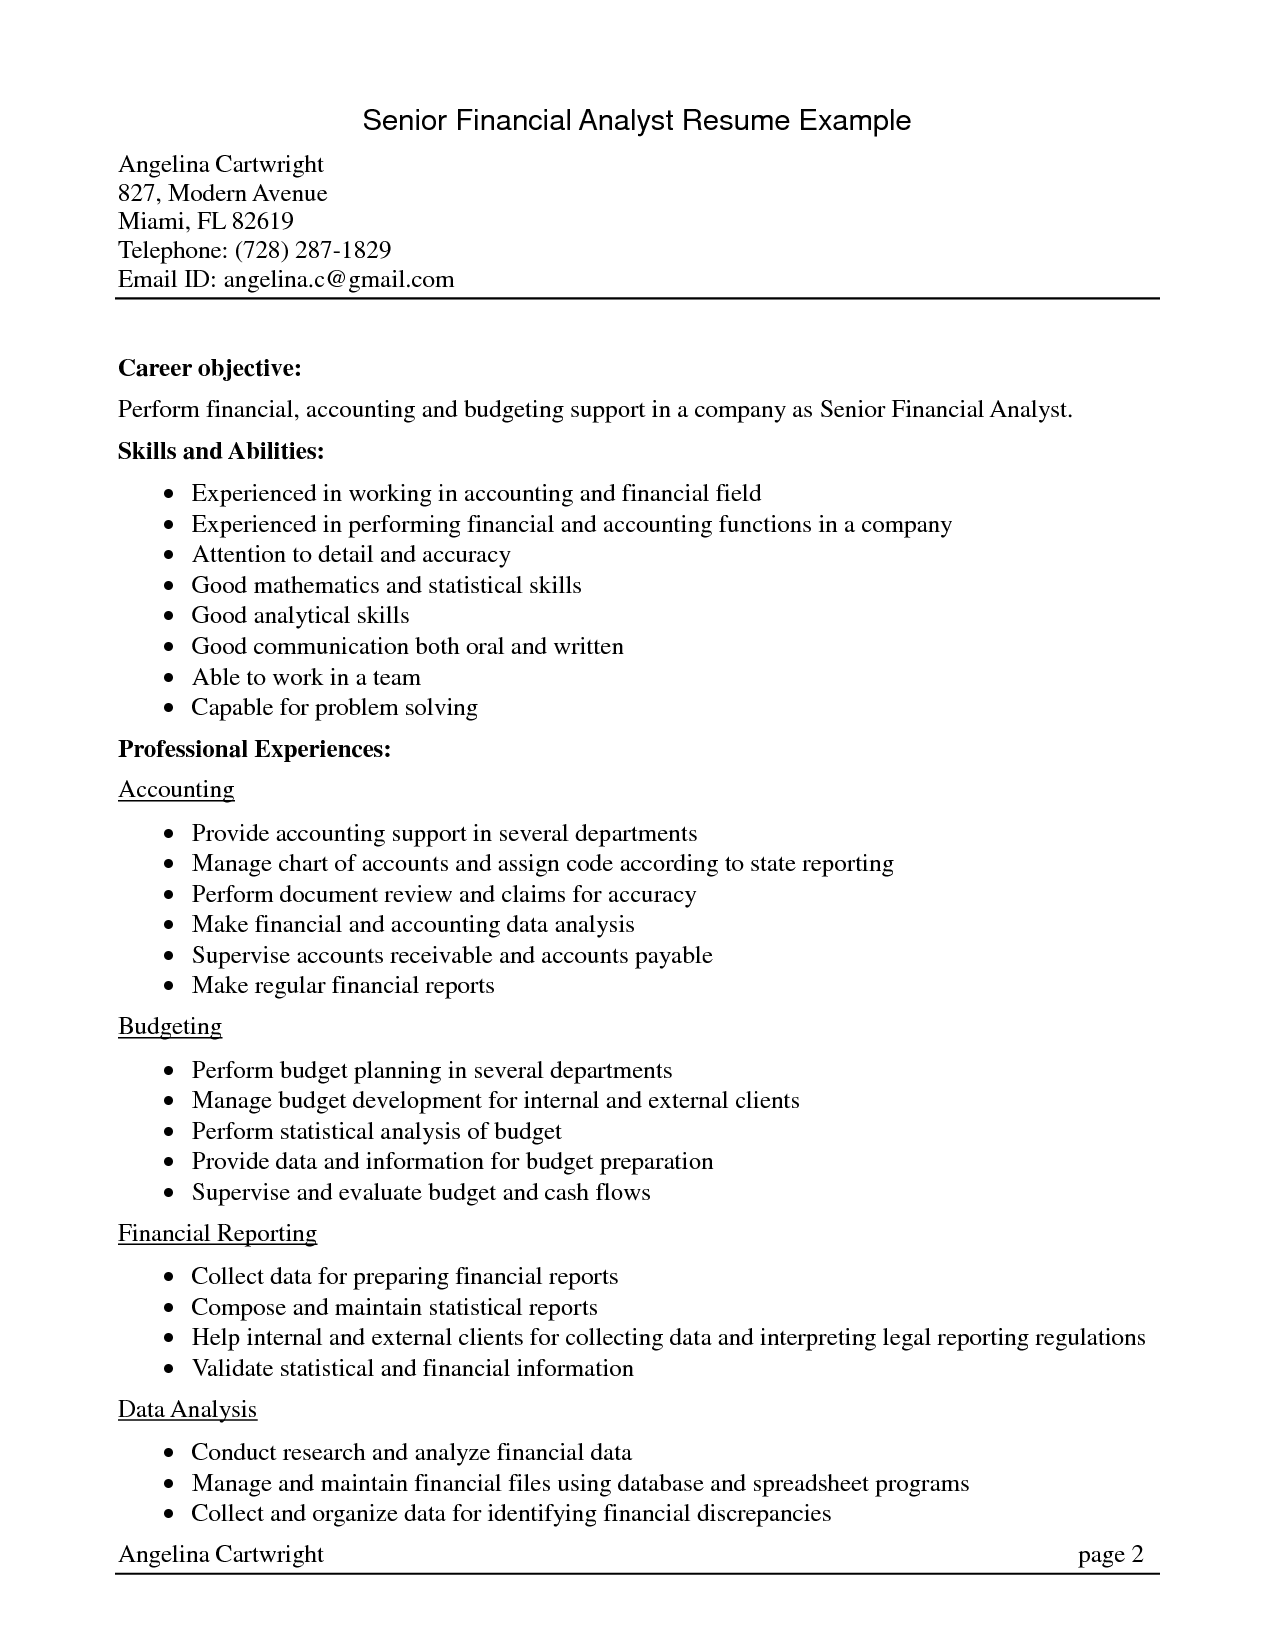 Senior Accountant Resume Summary Financial Achievements Cost